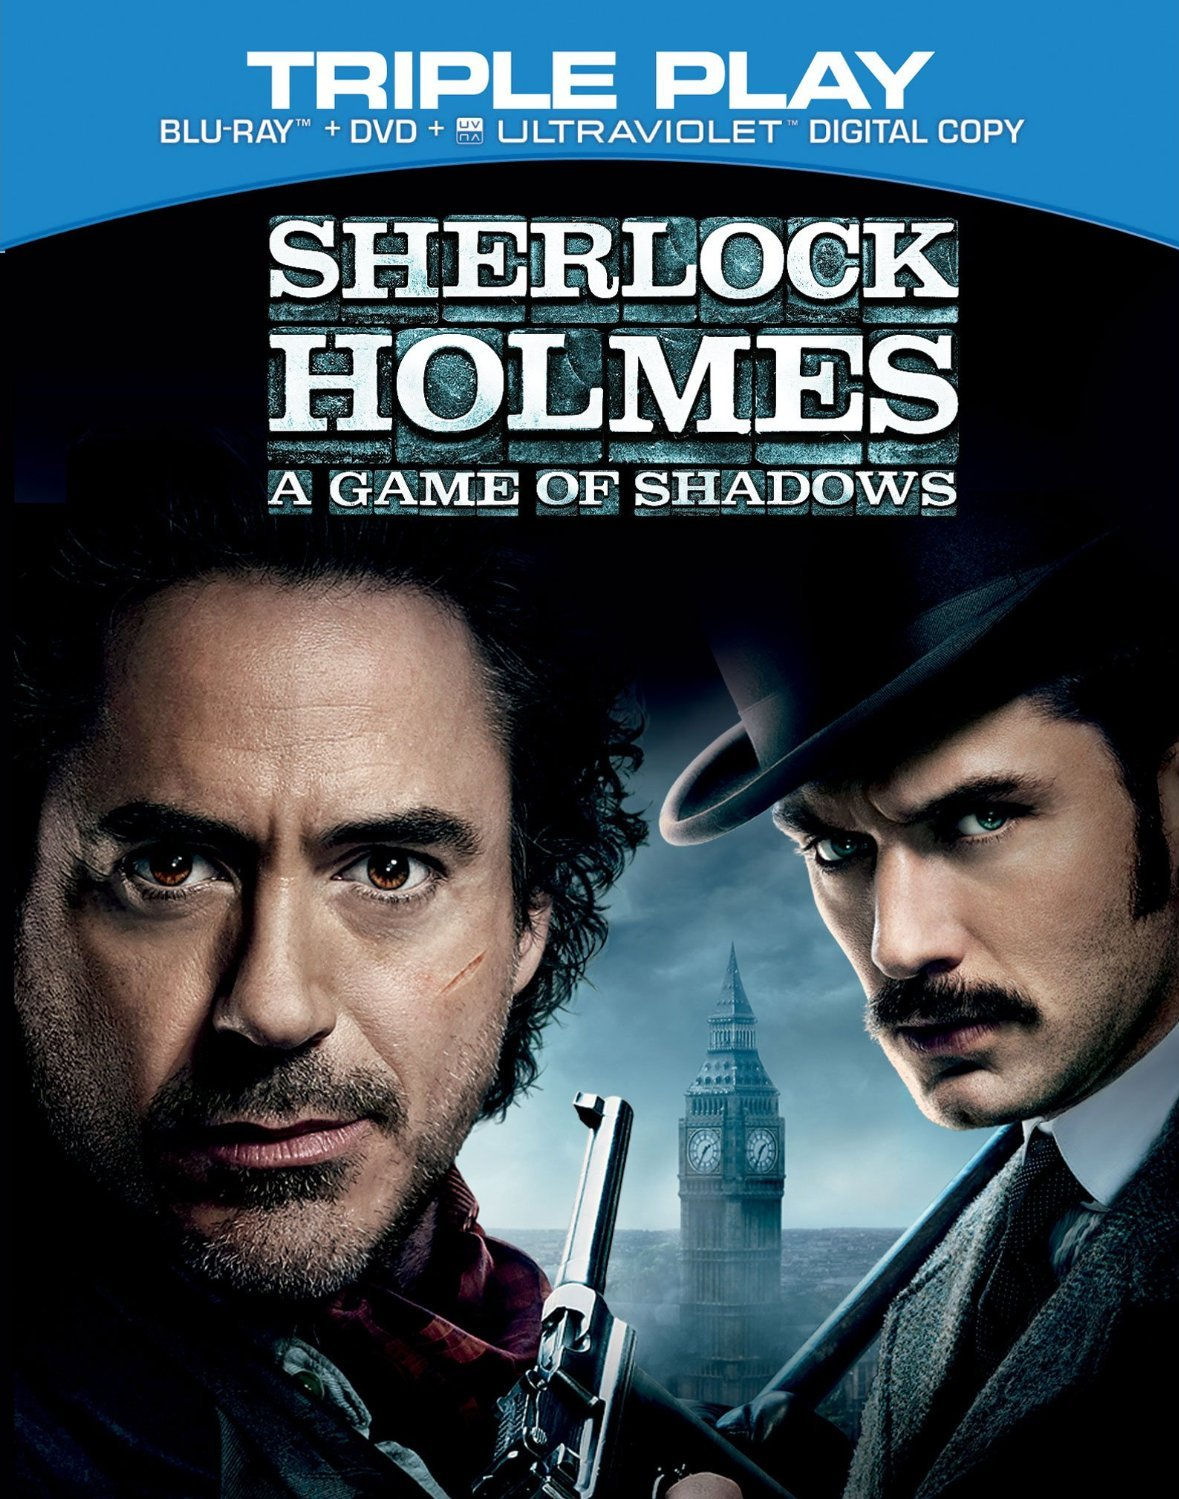 ... & HD Covers: Sherlock Holmes (1+2) Movie Duology Bluray HD Covers